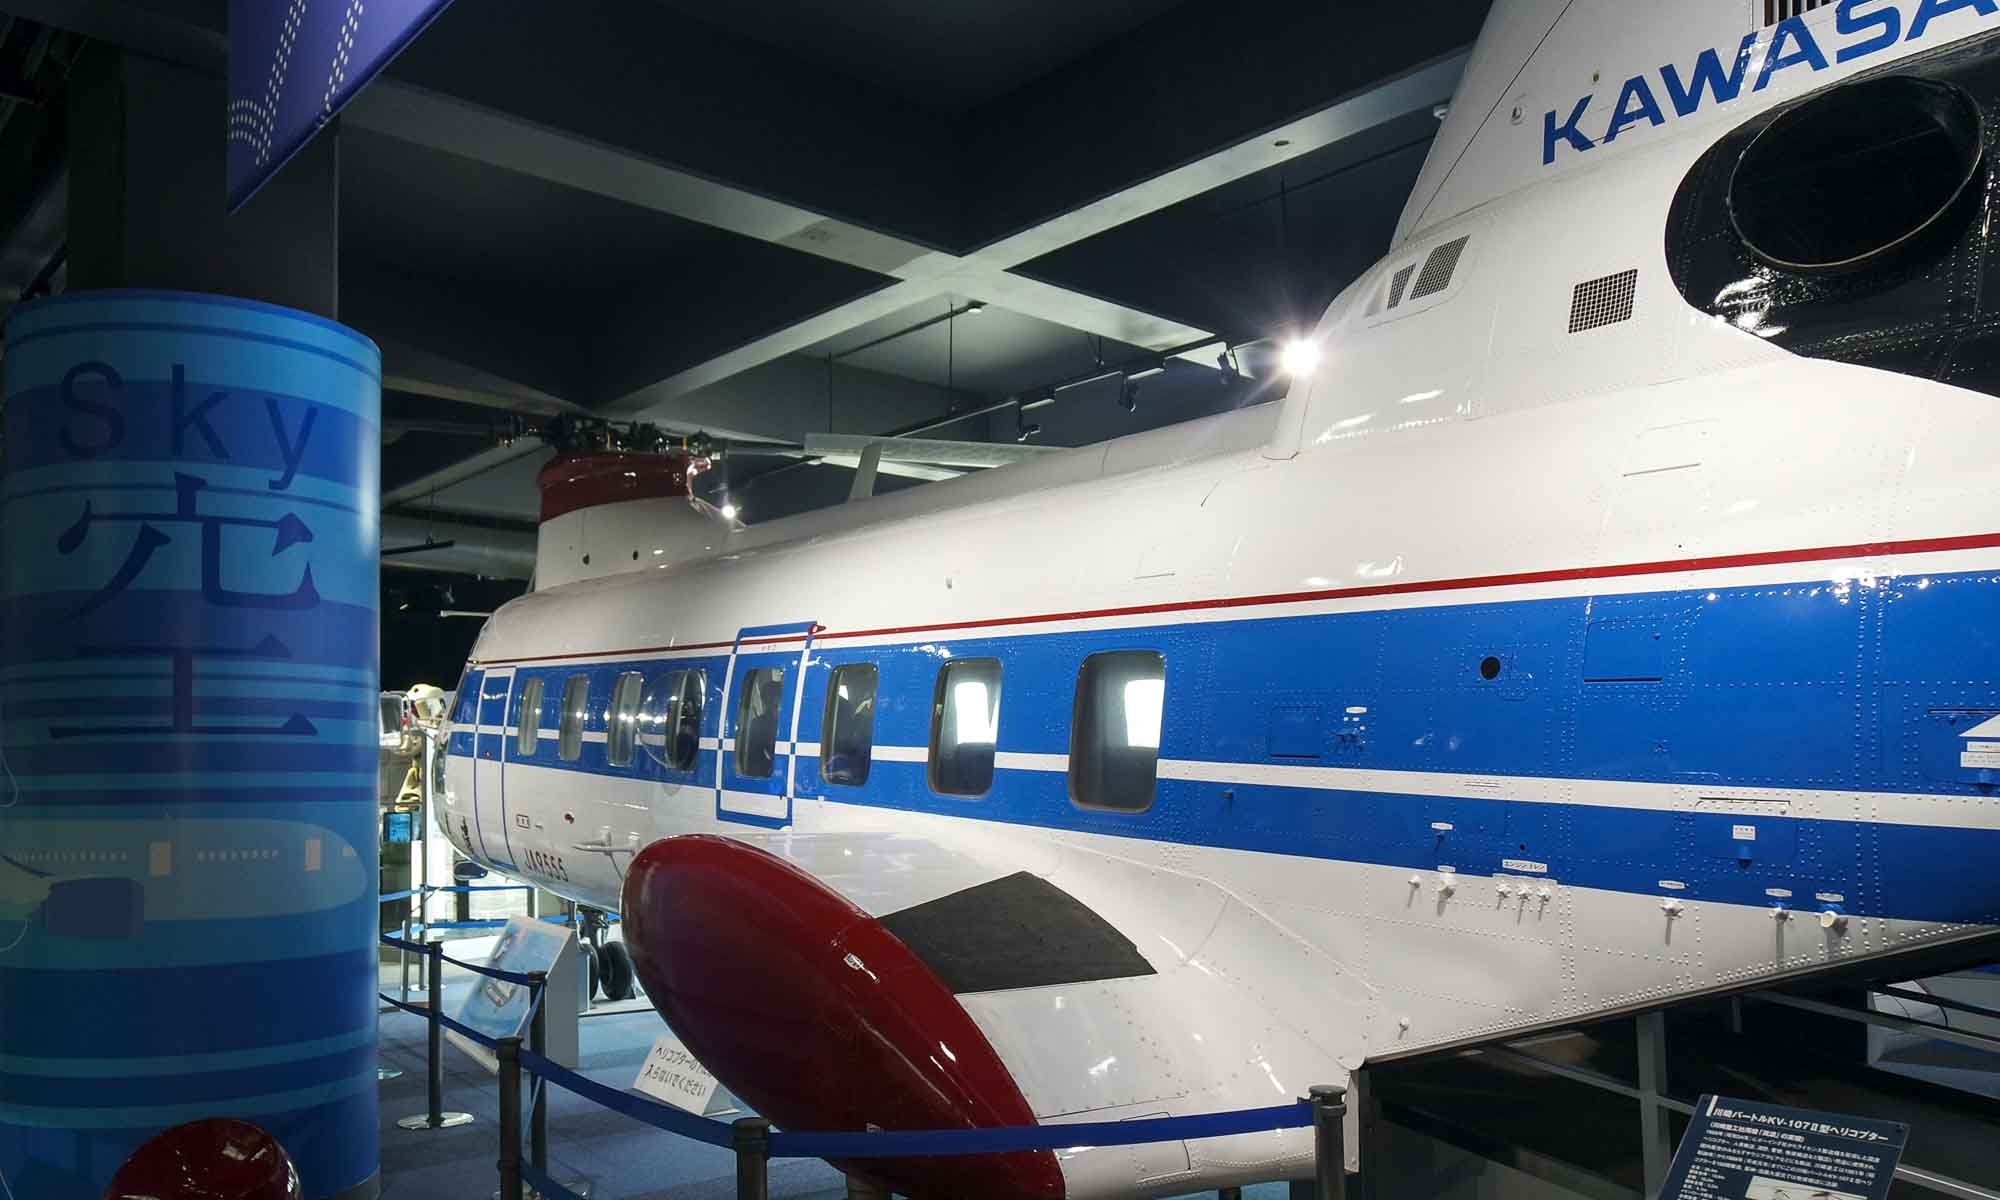 Kawasaki also builds helicopters, planes, ships, industrial robots and (high-speed) trains